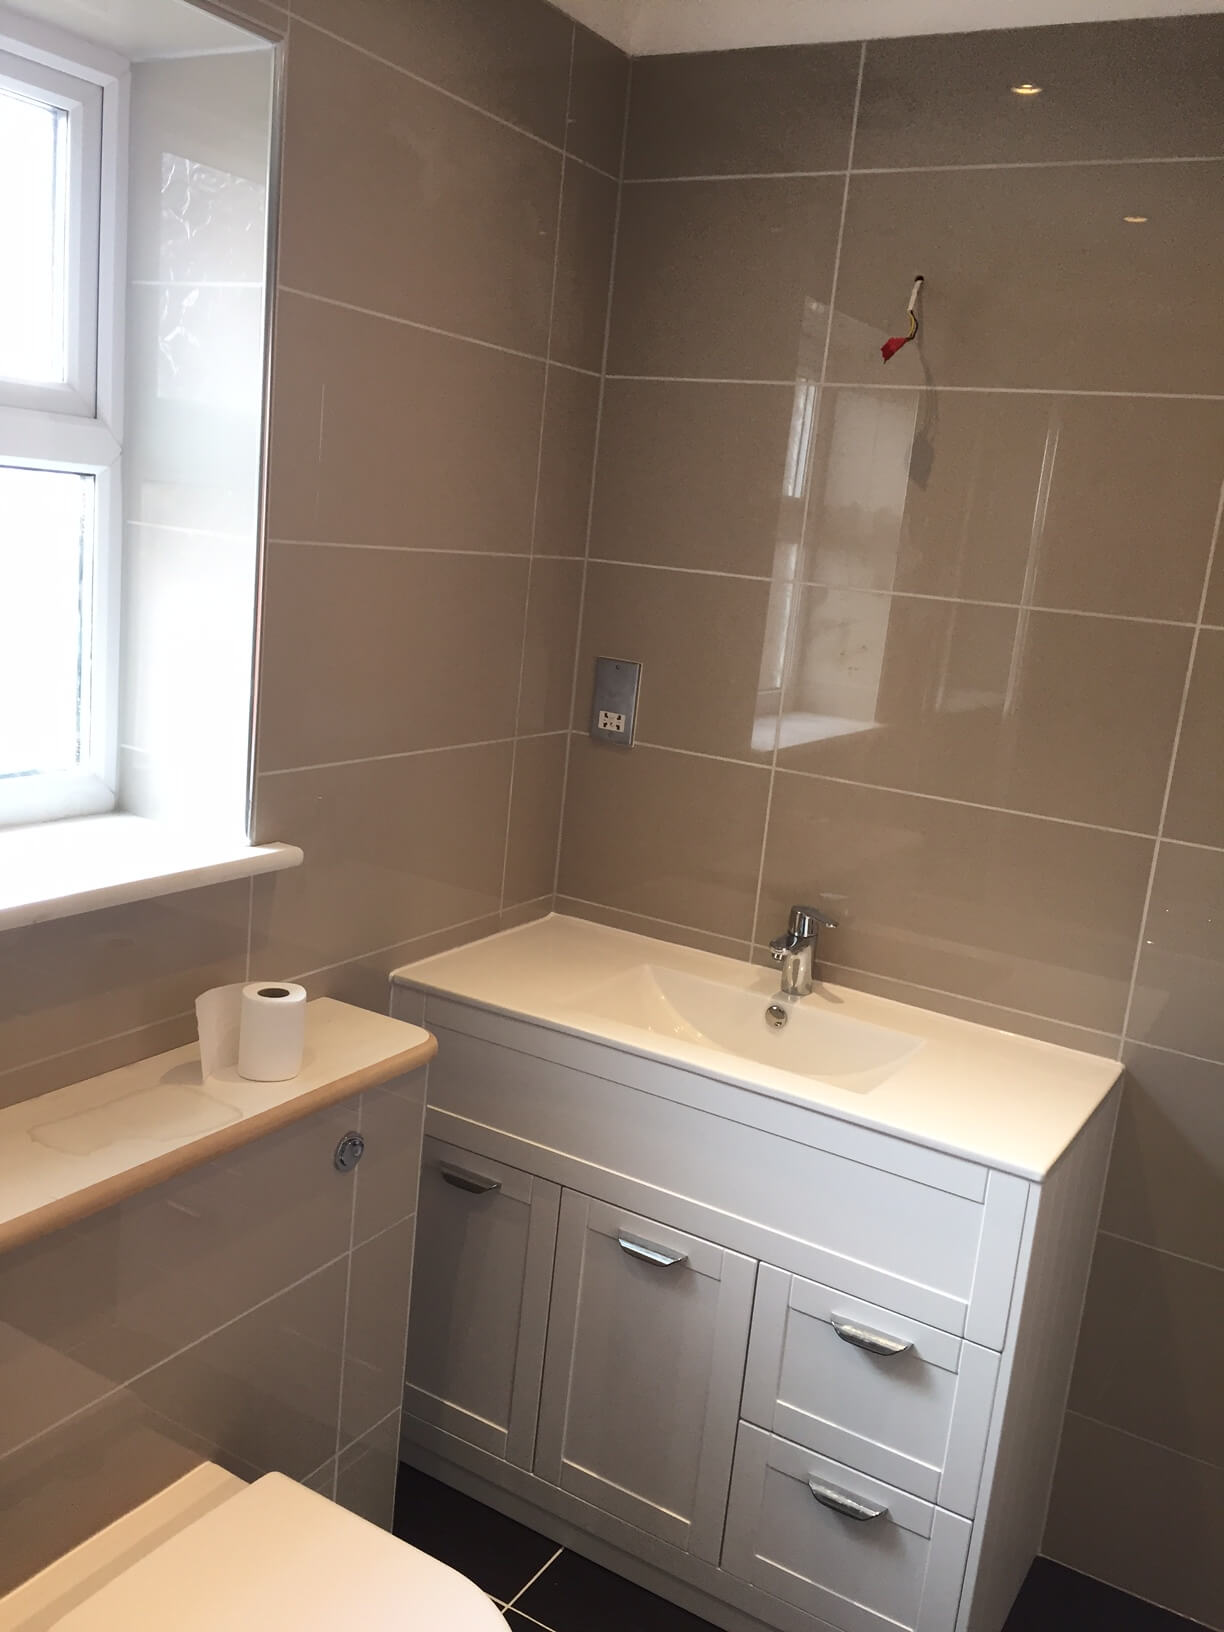 Vanity unit installed and plumbed in